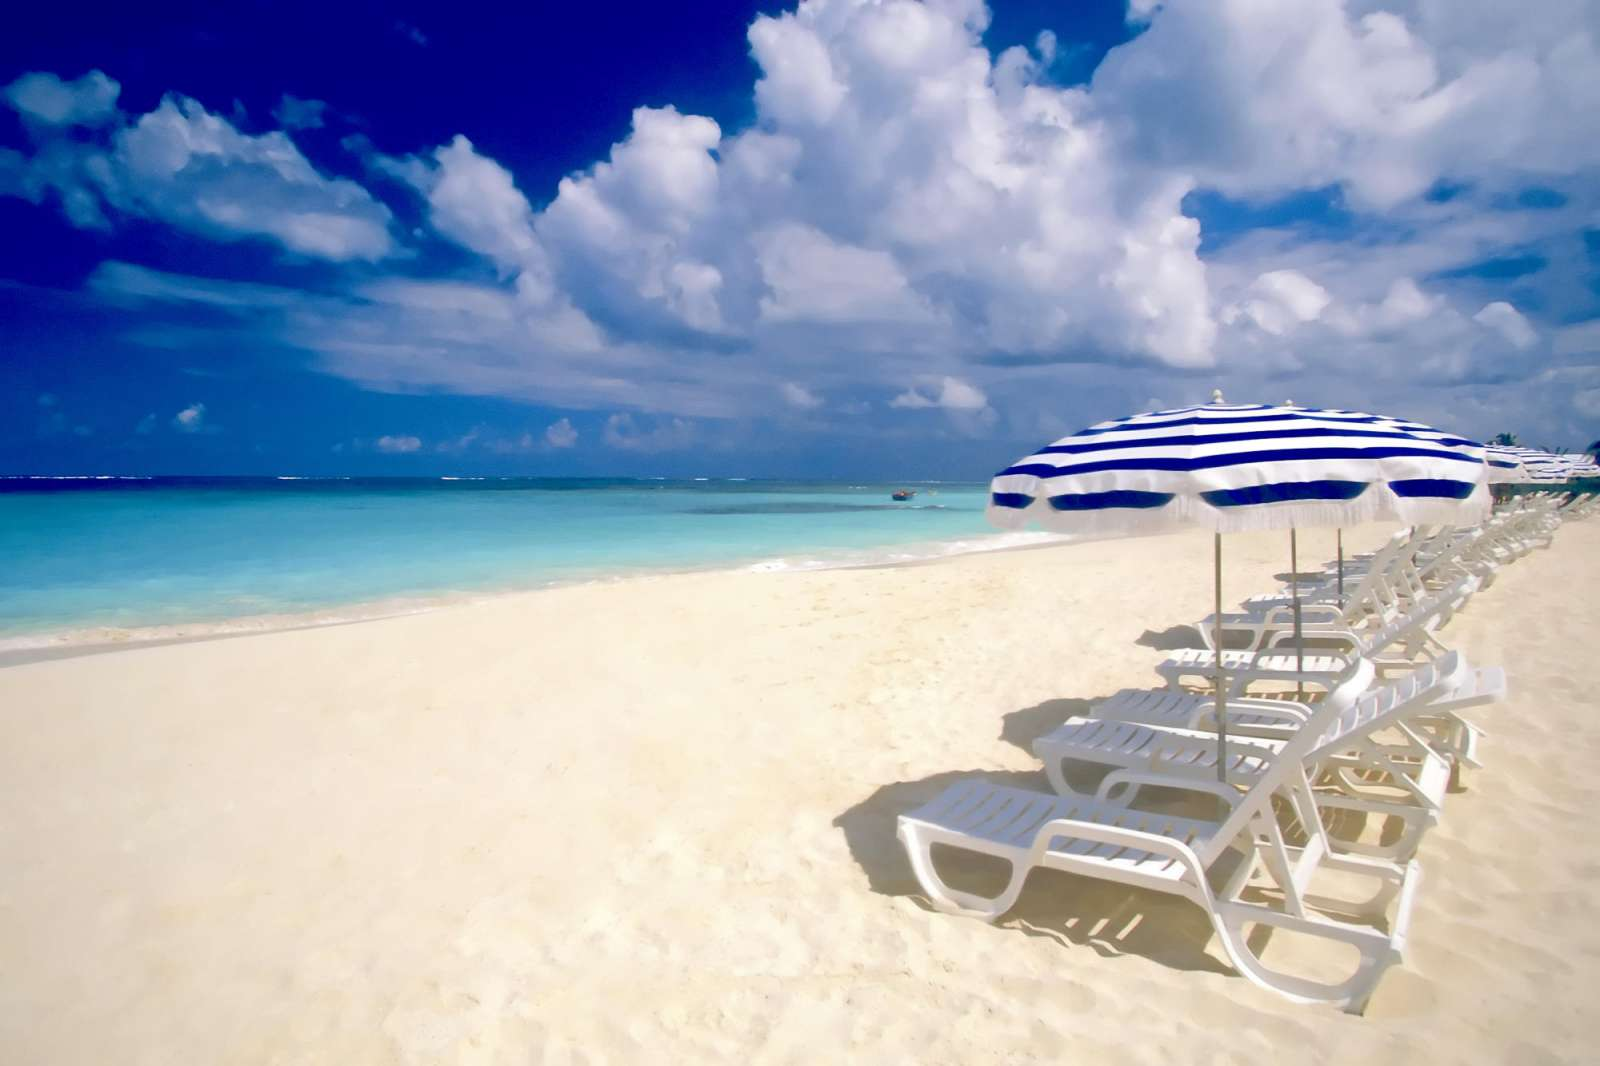 Shoal Bay Beach Anguilla Wallpapers Photos Pictures and Backgrounds 1600x1066